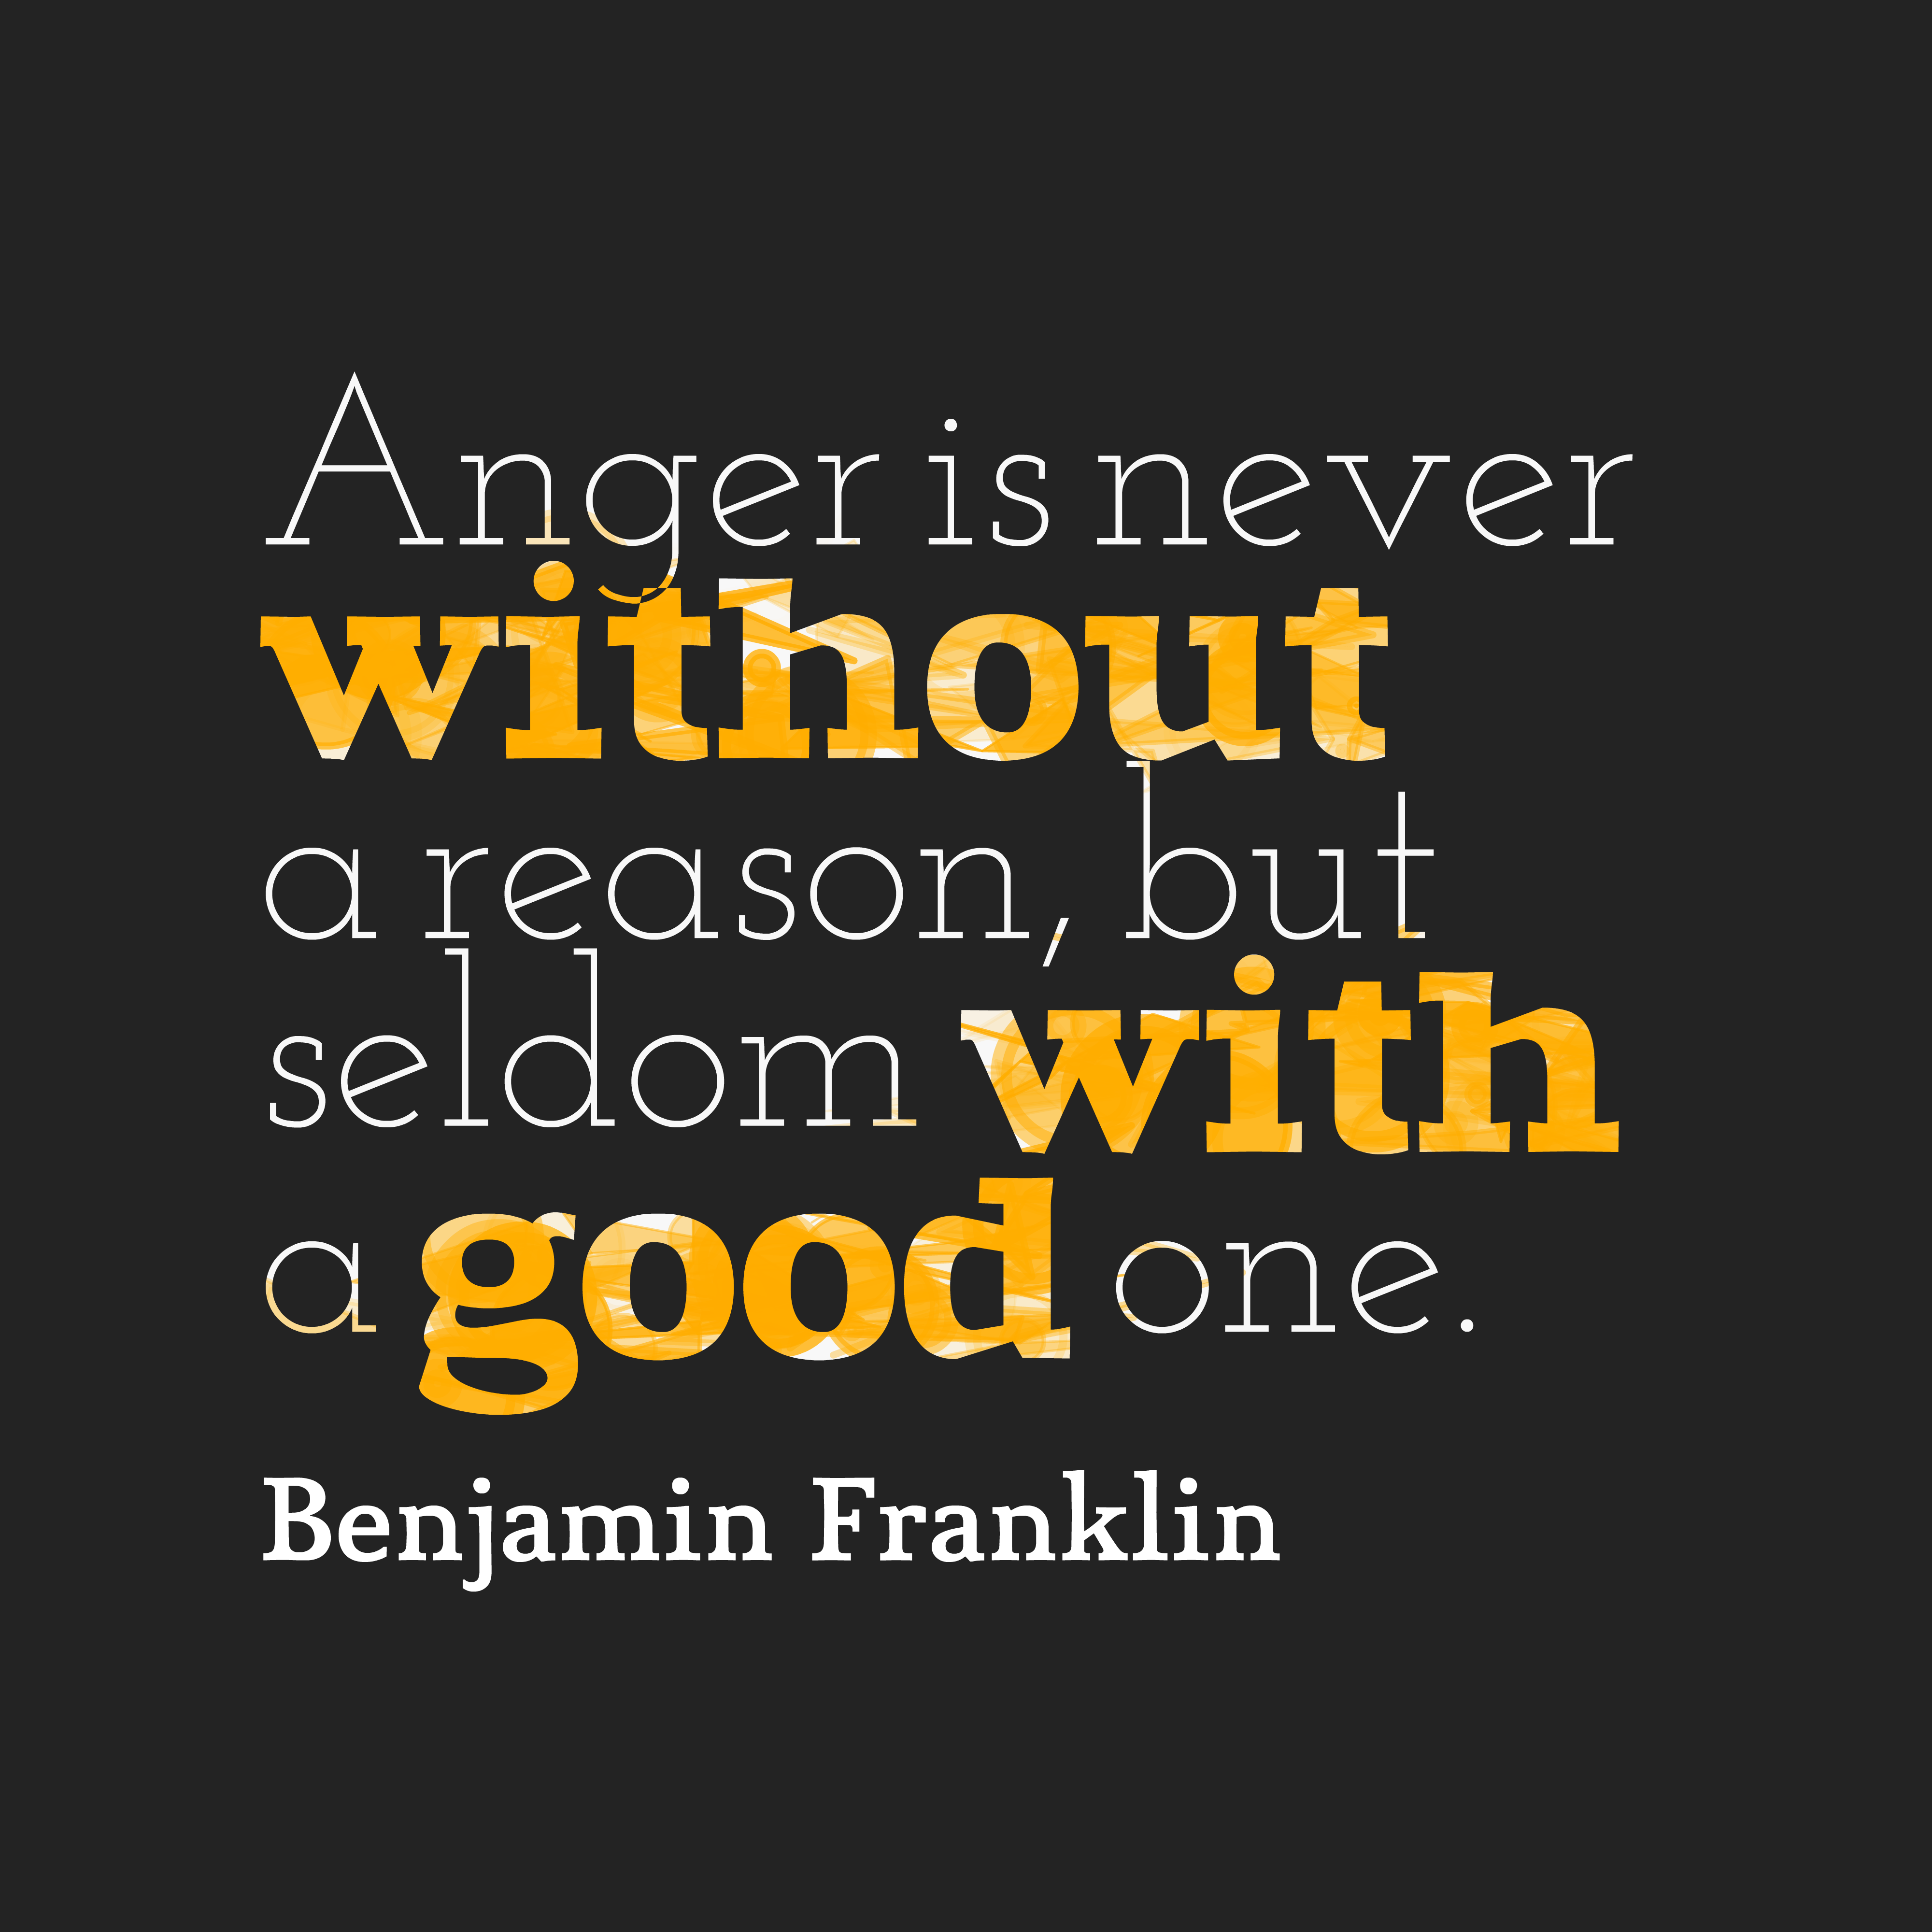 Anger is never without Reason, but seldom with a good One. Benjamin Franklin